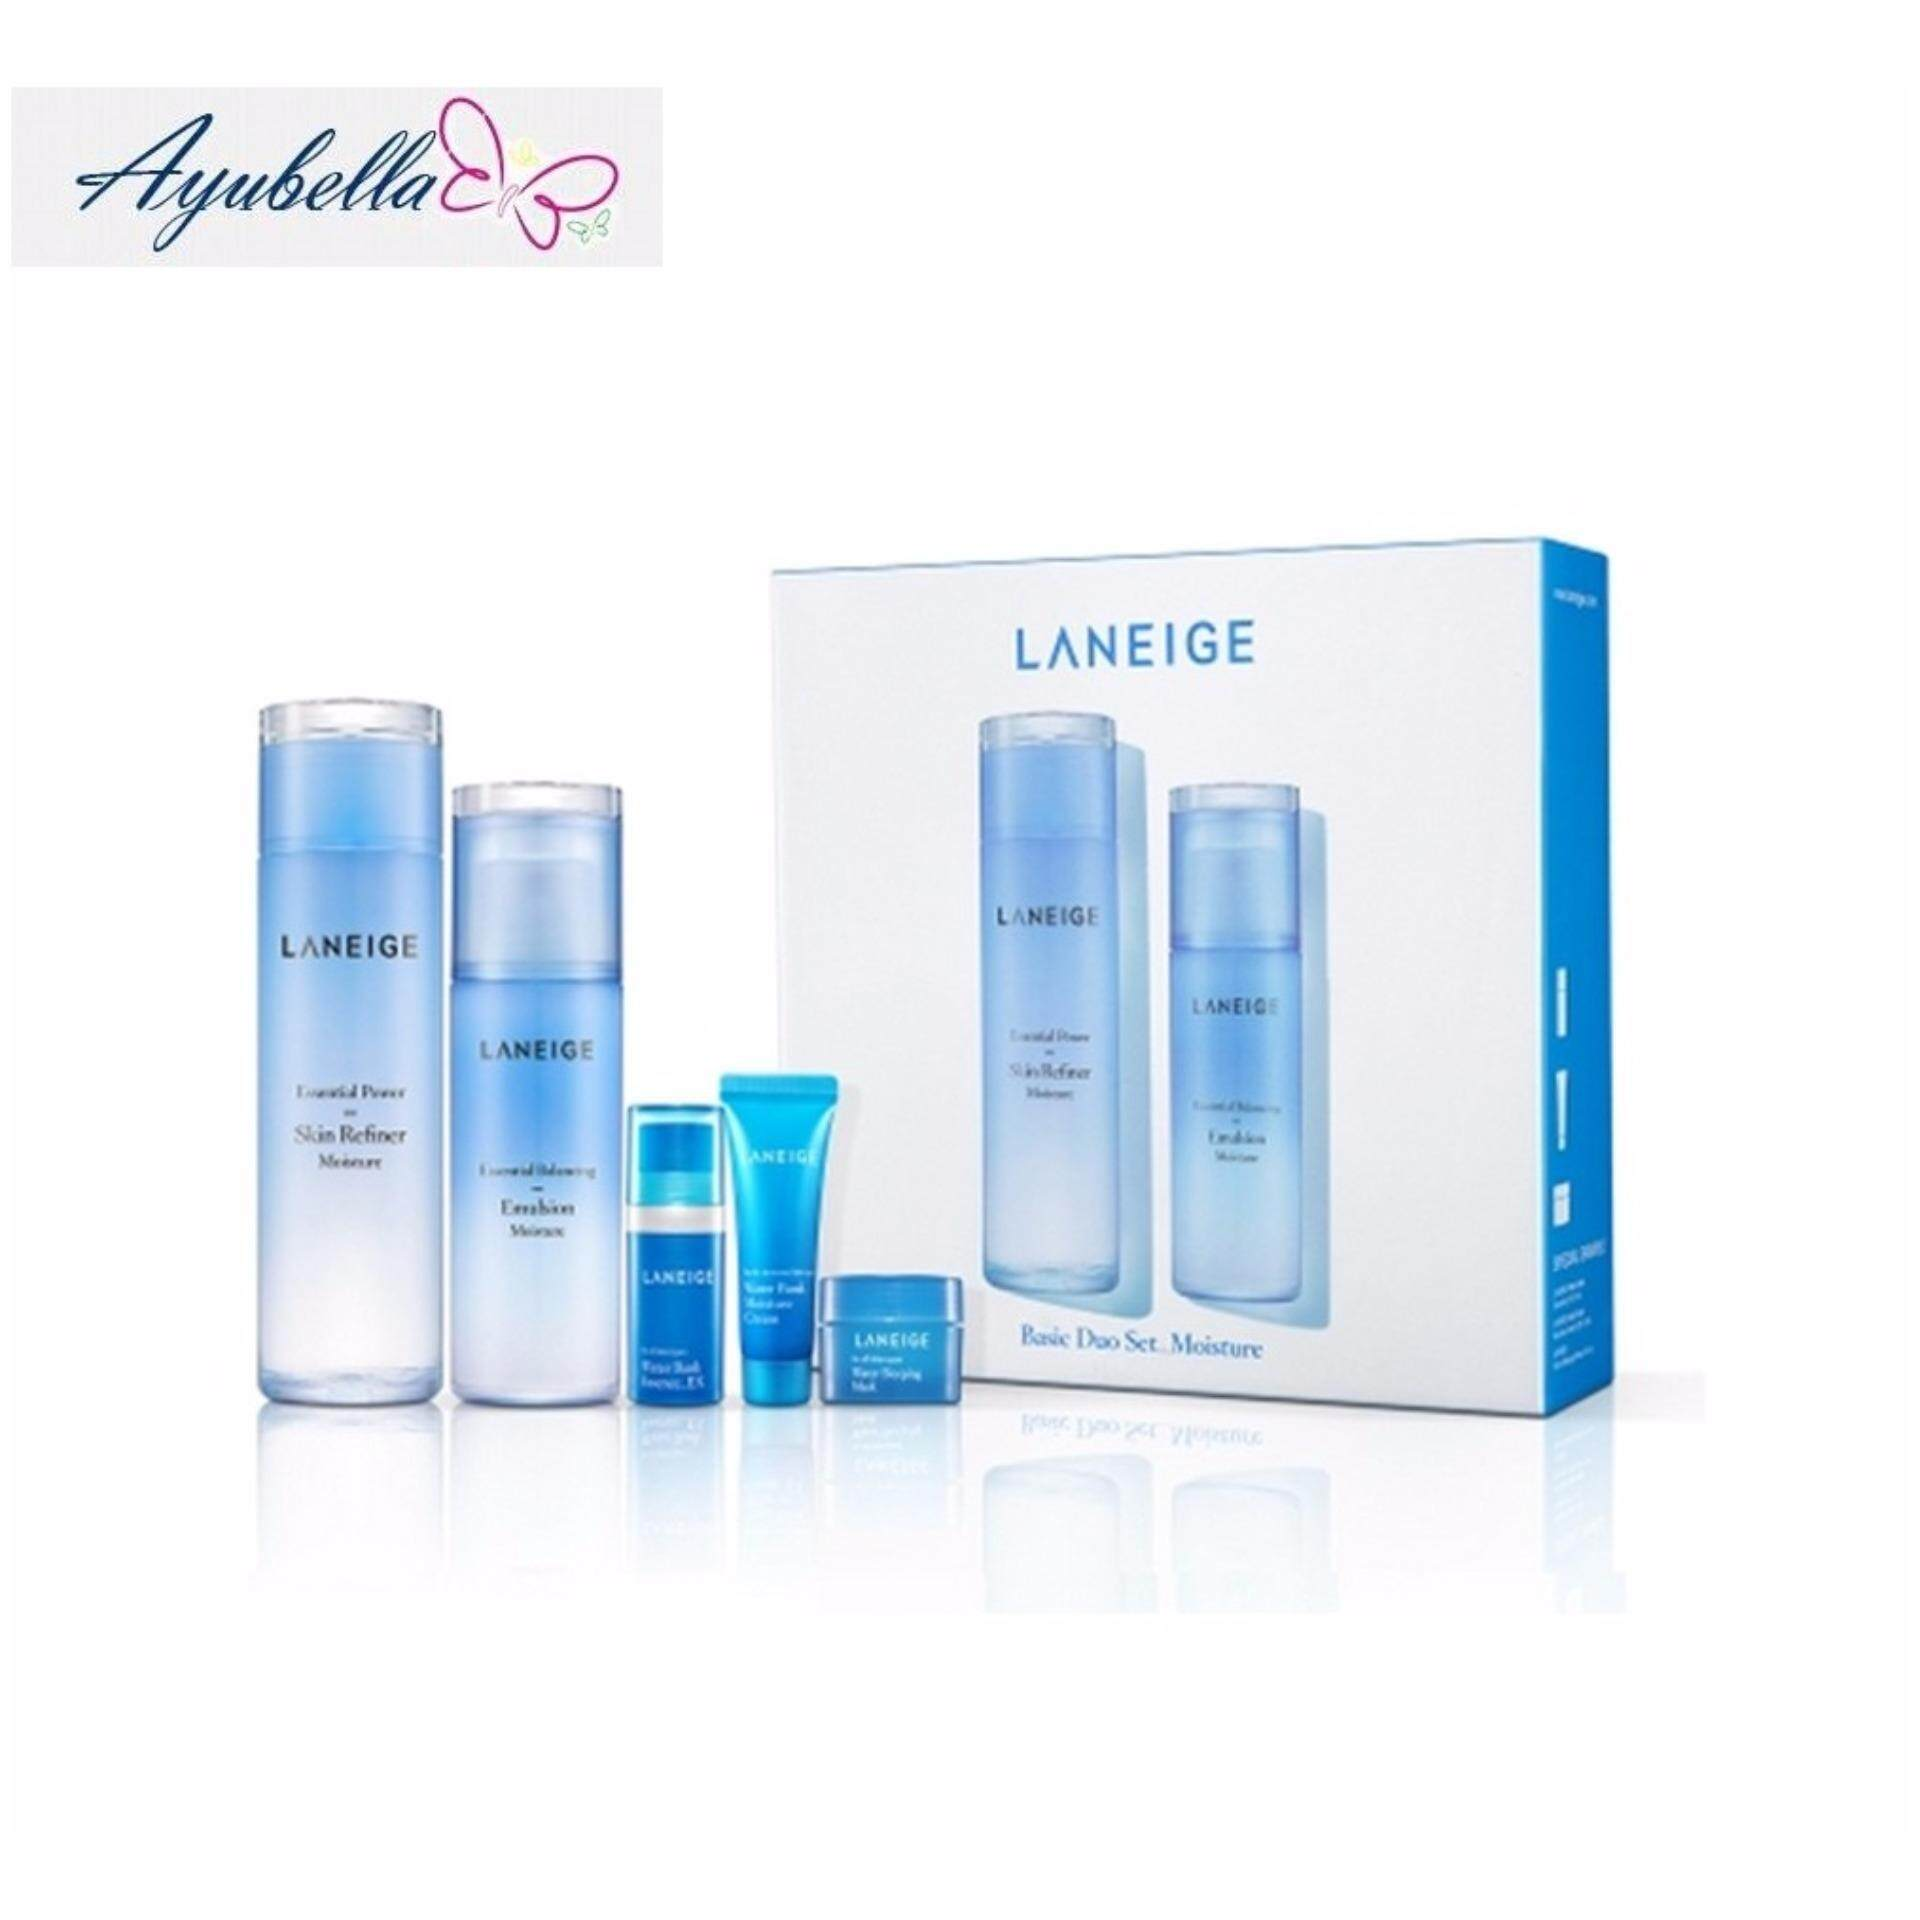 Laneige Basic Duo Set 5 in 1